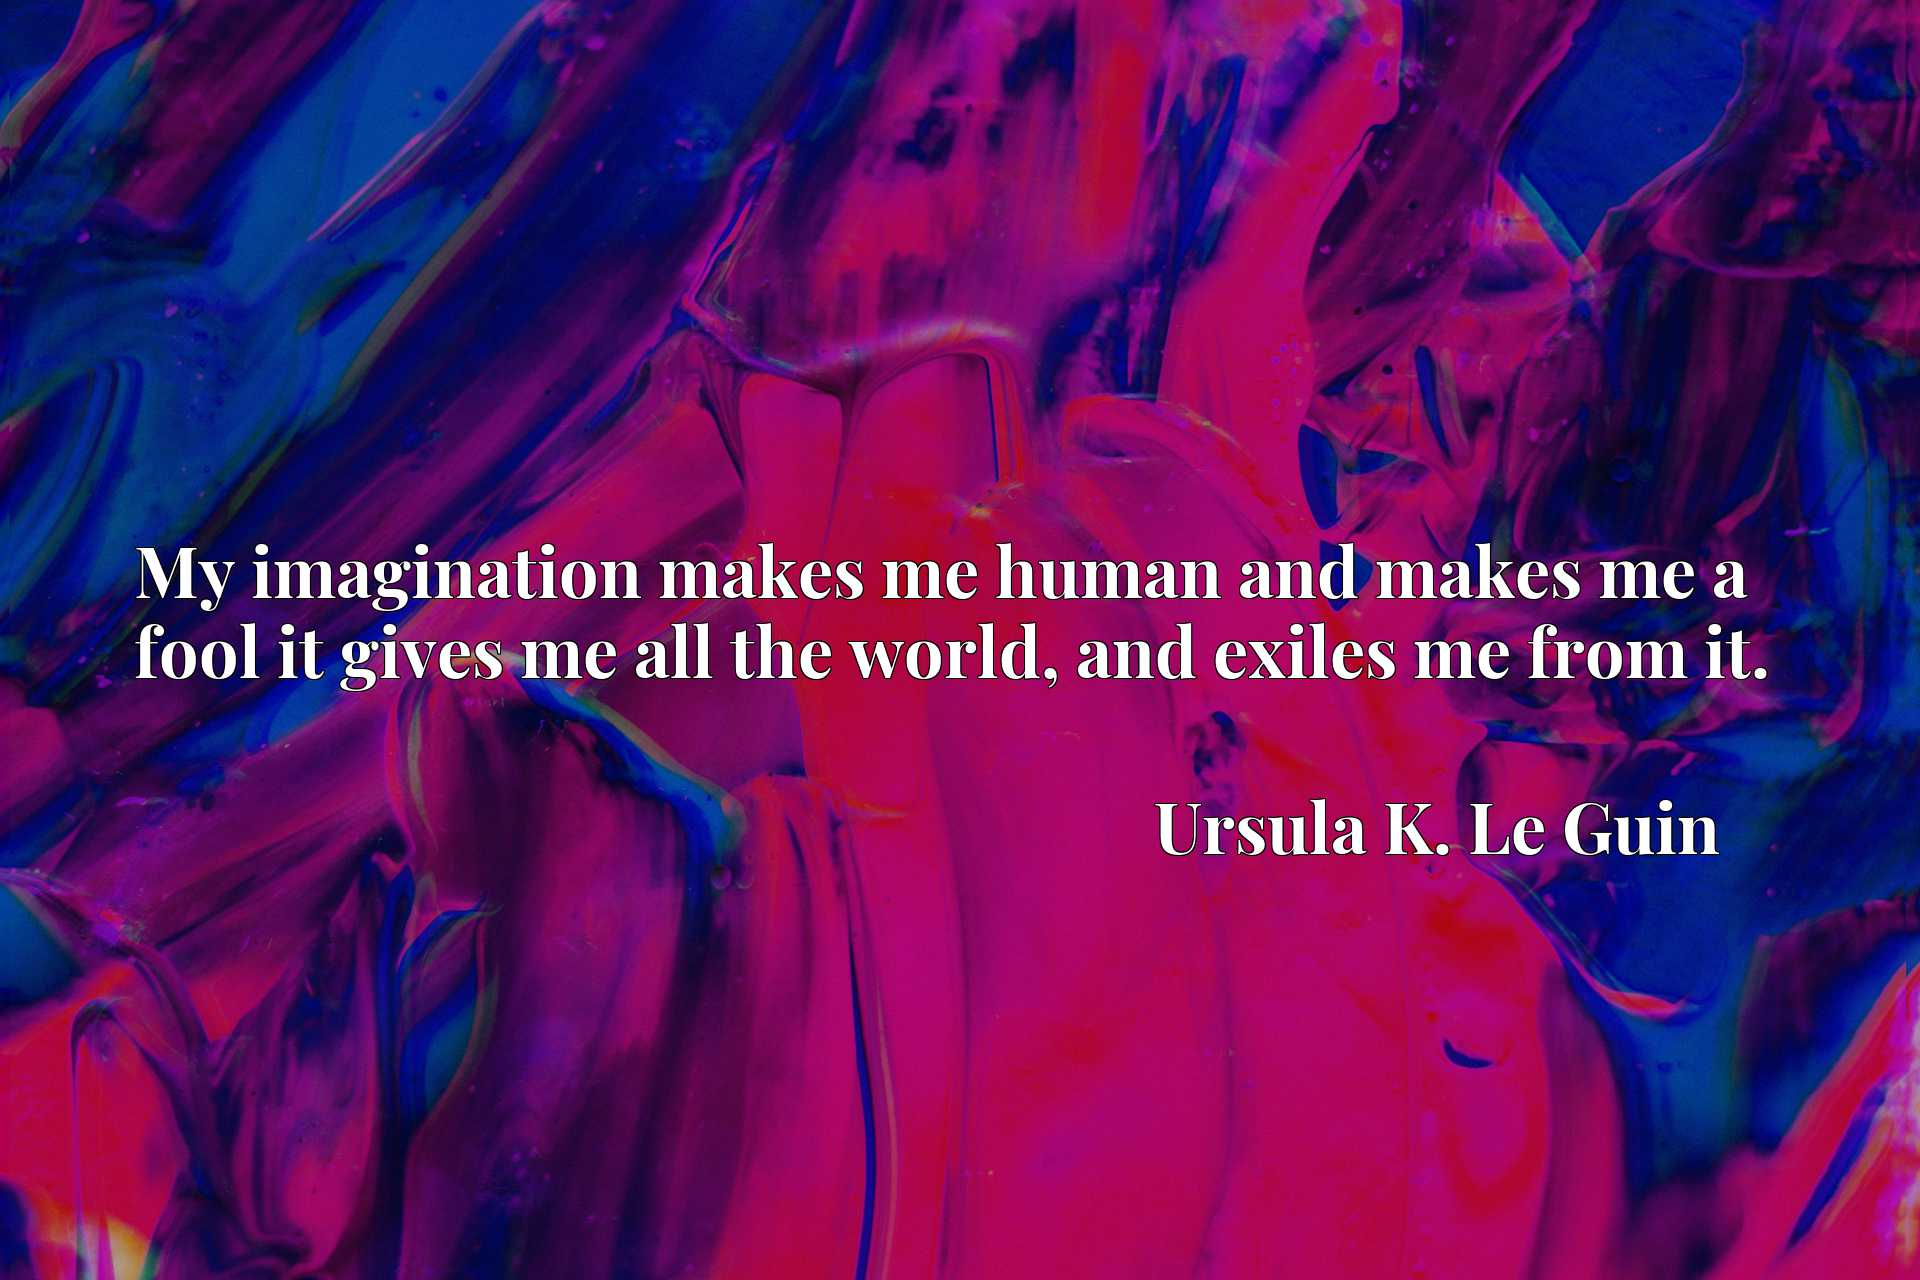 Quote Picture :My imagination makes me human and makes me a fool it gives me all the world, and exiles me from it.